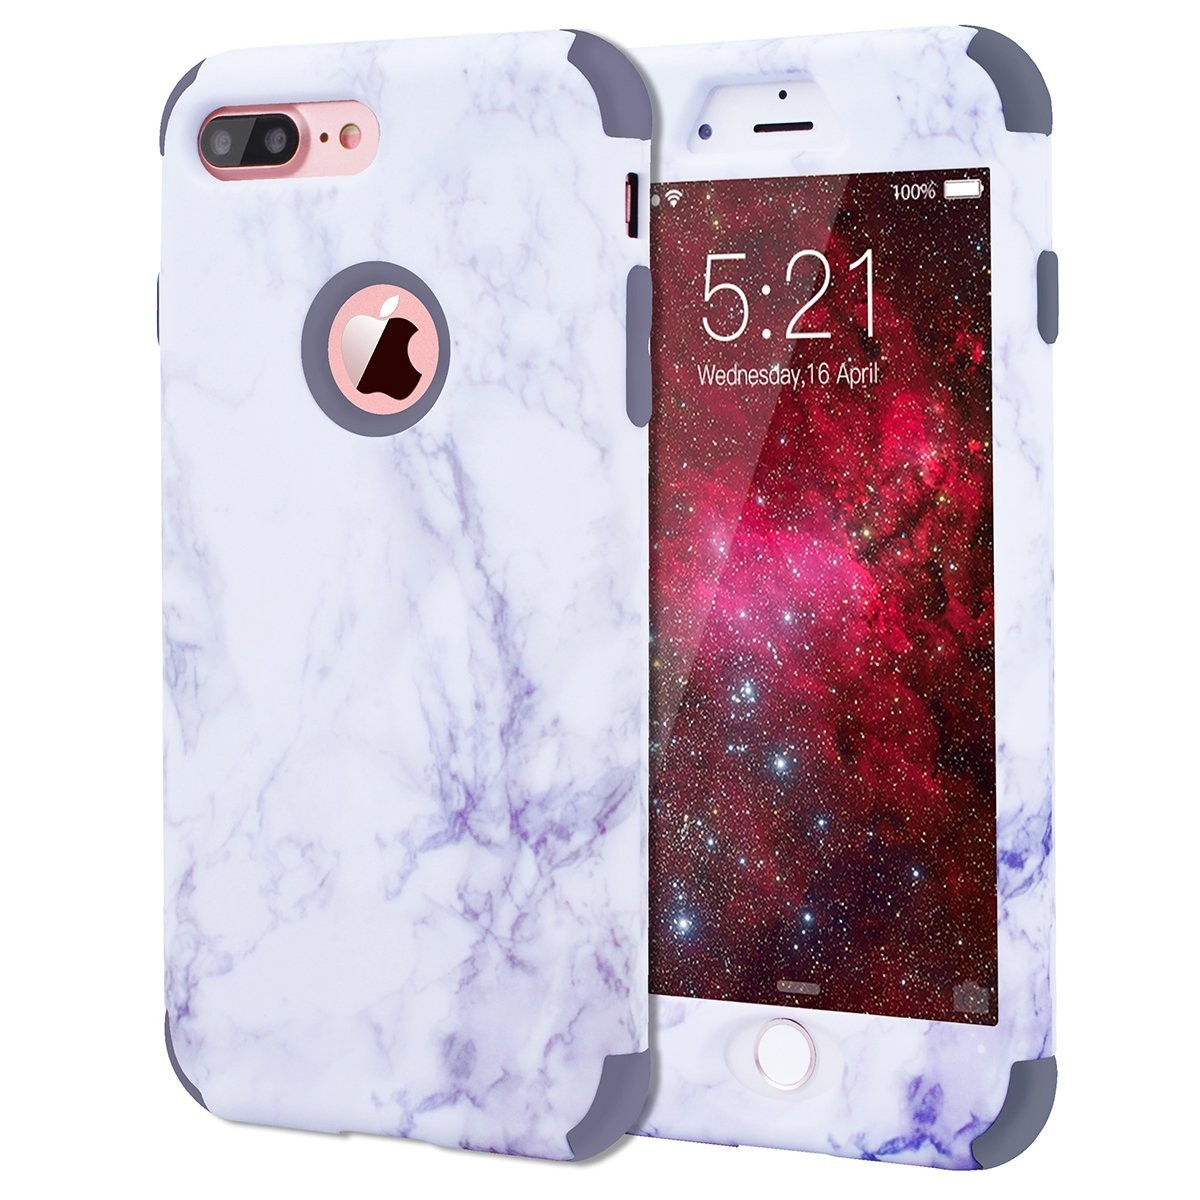 brand new 4274c bca10 iPhone 7 Plus Case, Dexnor Dual Layer Hybrid Marble Hard Case Full Body  Anti Scratch Shock-Absorbing Protective Case for iPhone 7 Plus 5.5'' - Gray